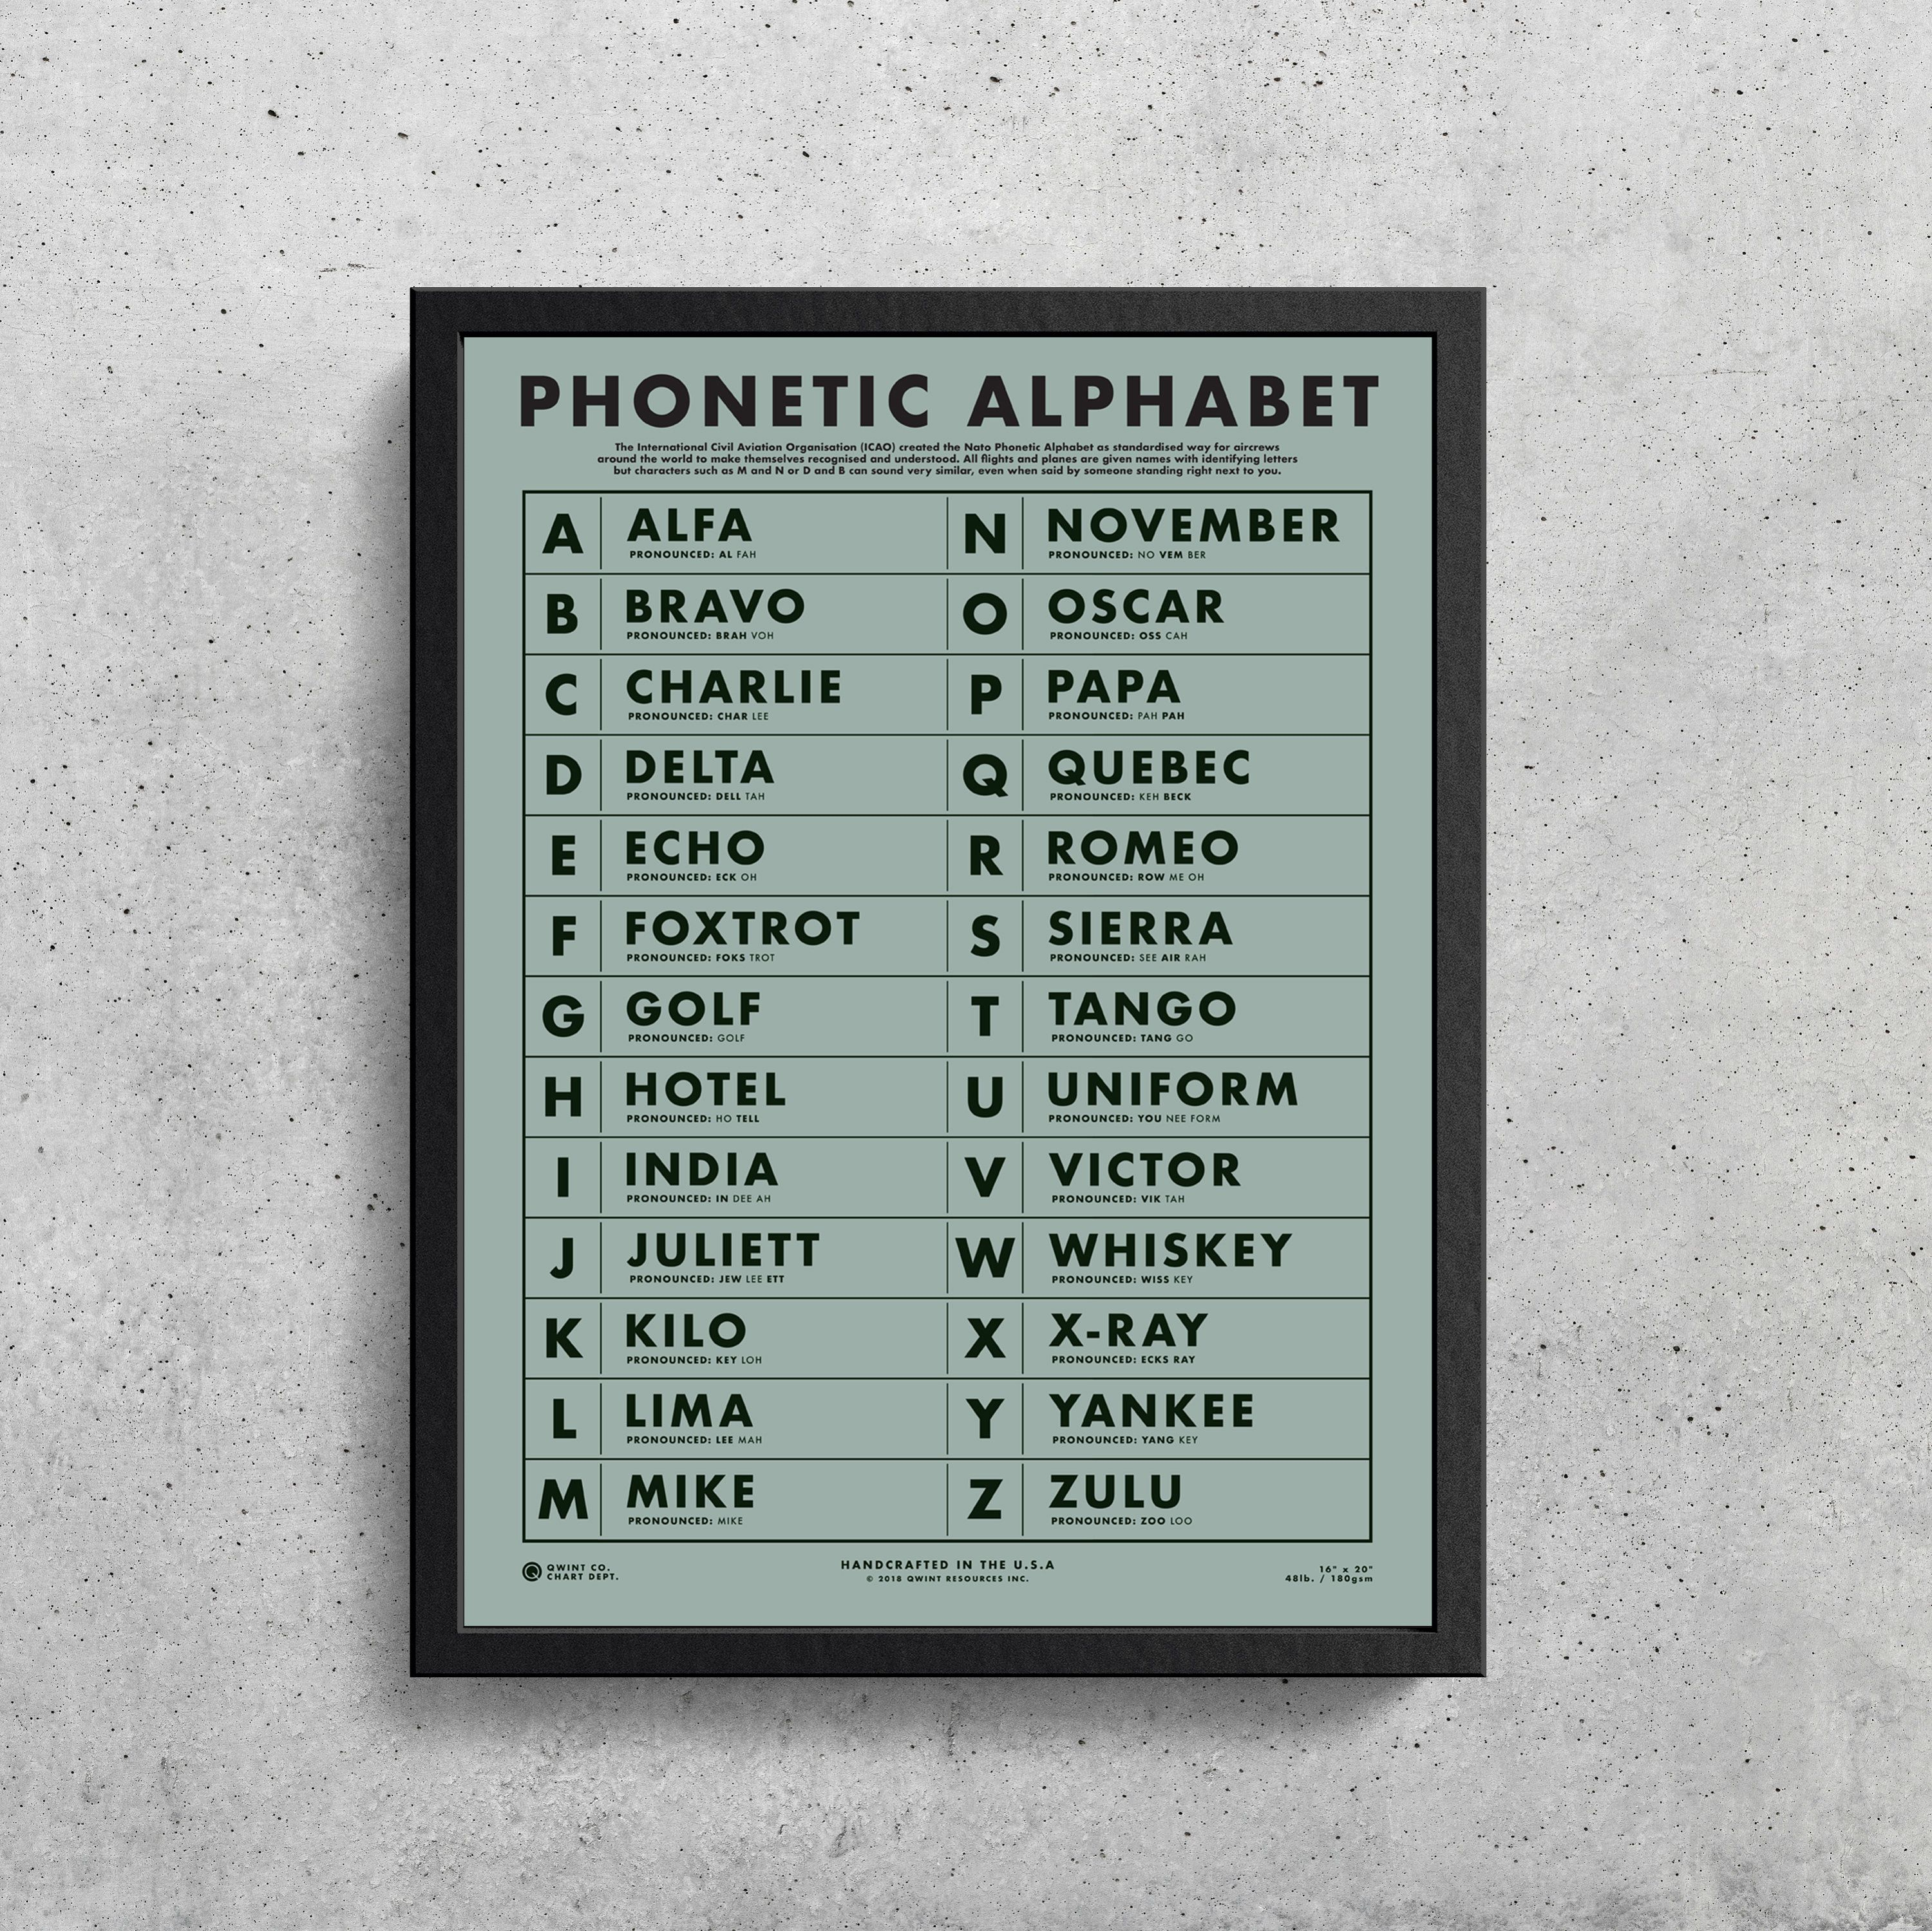 Nato Phonetic Alphabet Printable Aviation Art Gifts For Pilots The Walking Dead Wes Anderson Boys Room Bathroom Decor Phonetic Alphabet Nato Phonetic Alphabet Alphabet Wall Art